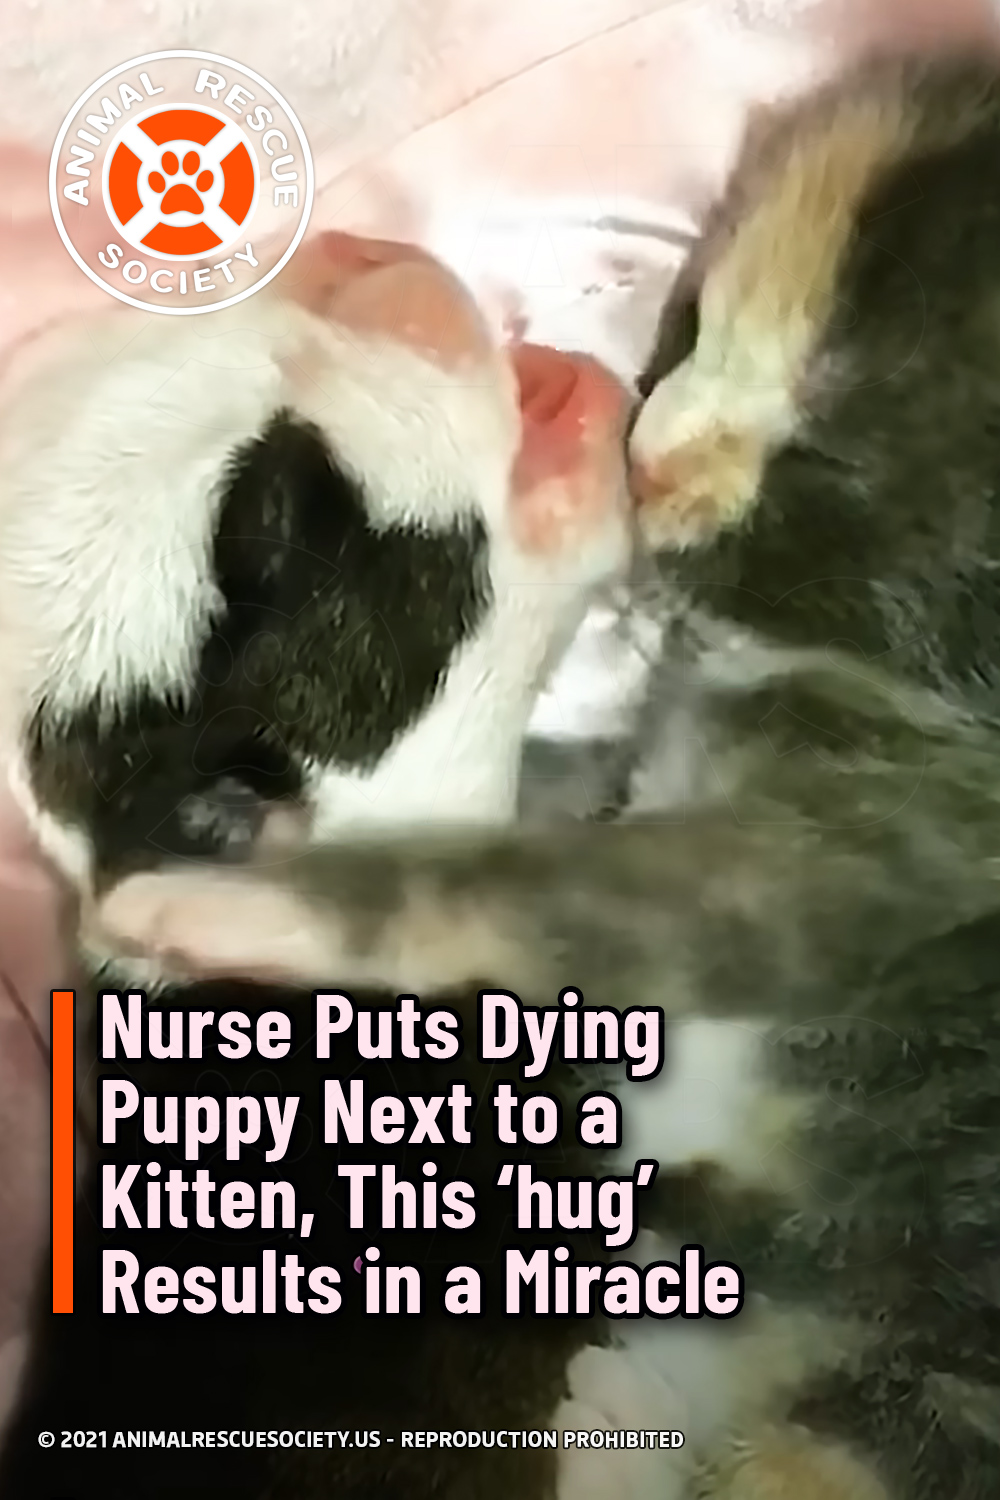 Nurse Puts Dying Puppy Next to a Kitten, This 'hug' Results in a Miracle